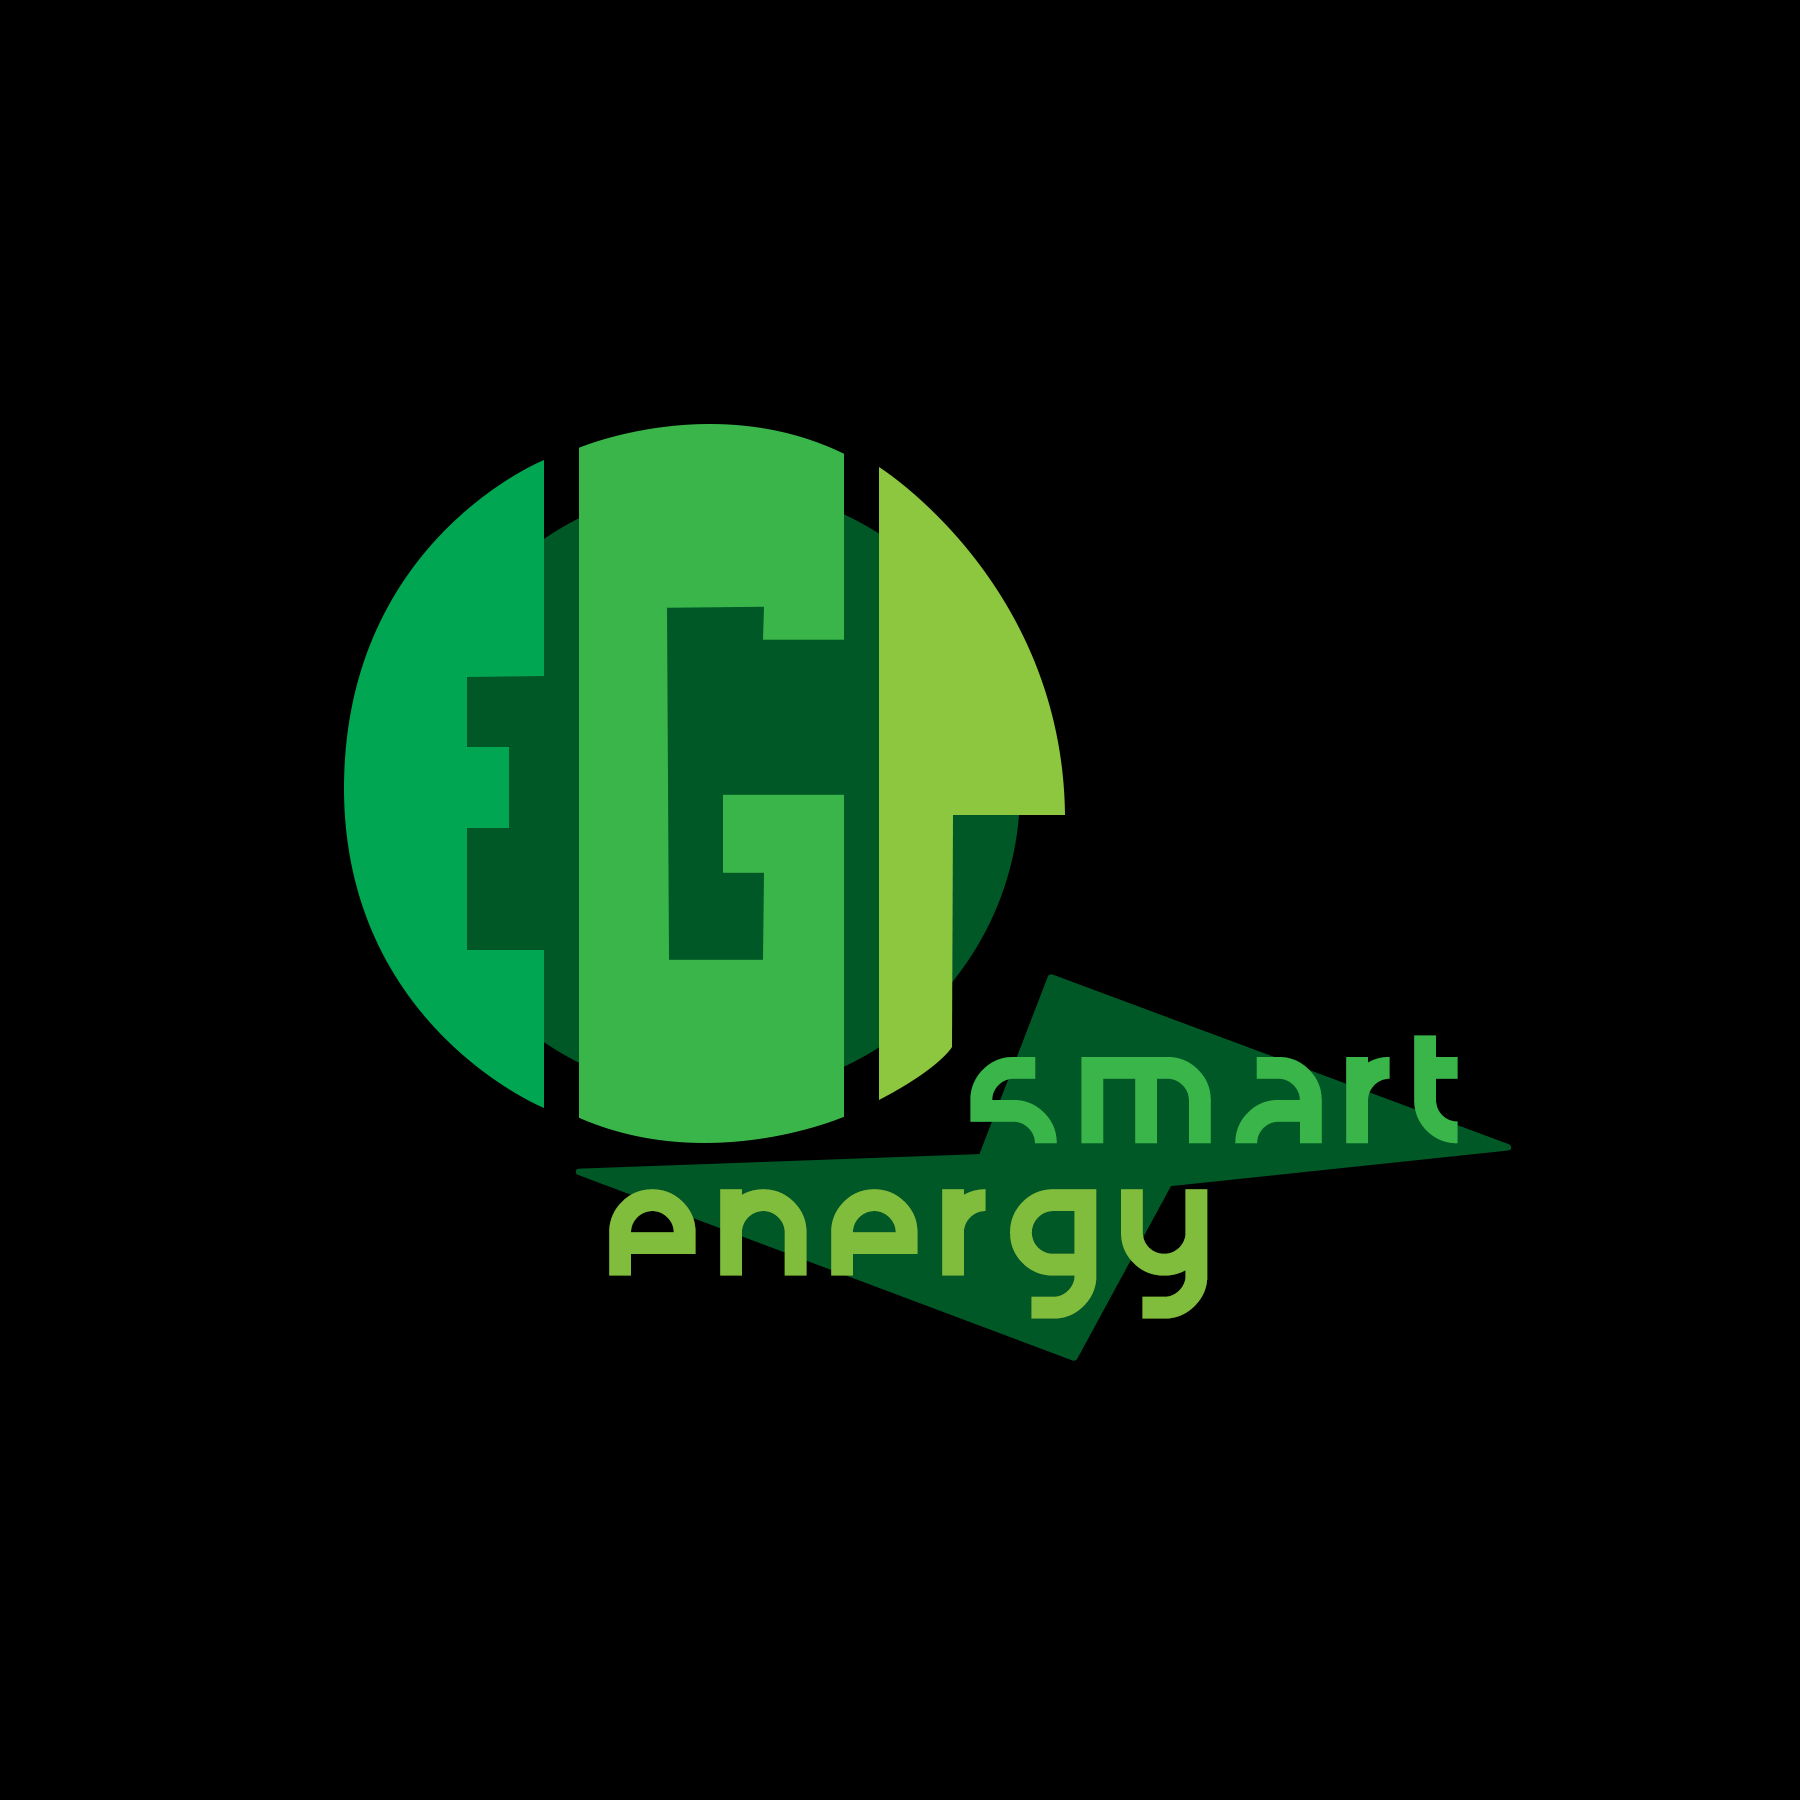 Logo Design by Lemuel Arvin Tanzo - Entry No. 101 in the Logo Design Contest Captivating Logo Design for EGP Smart Energy.